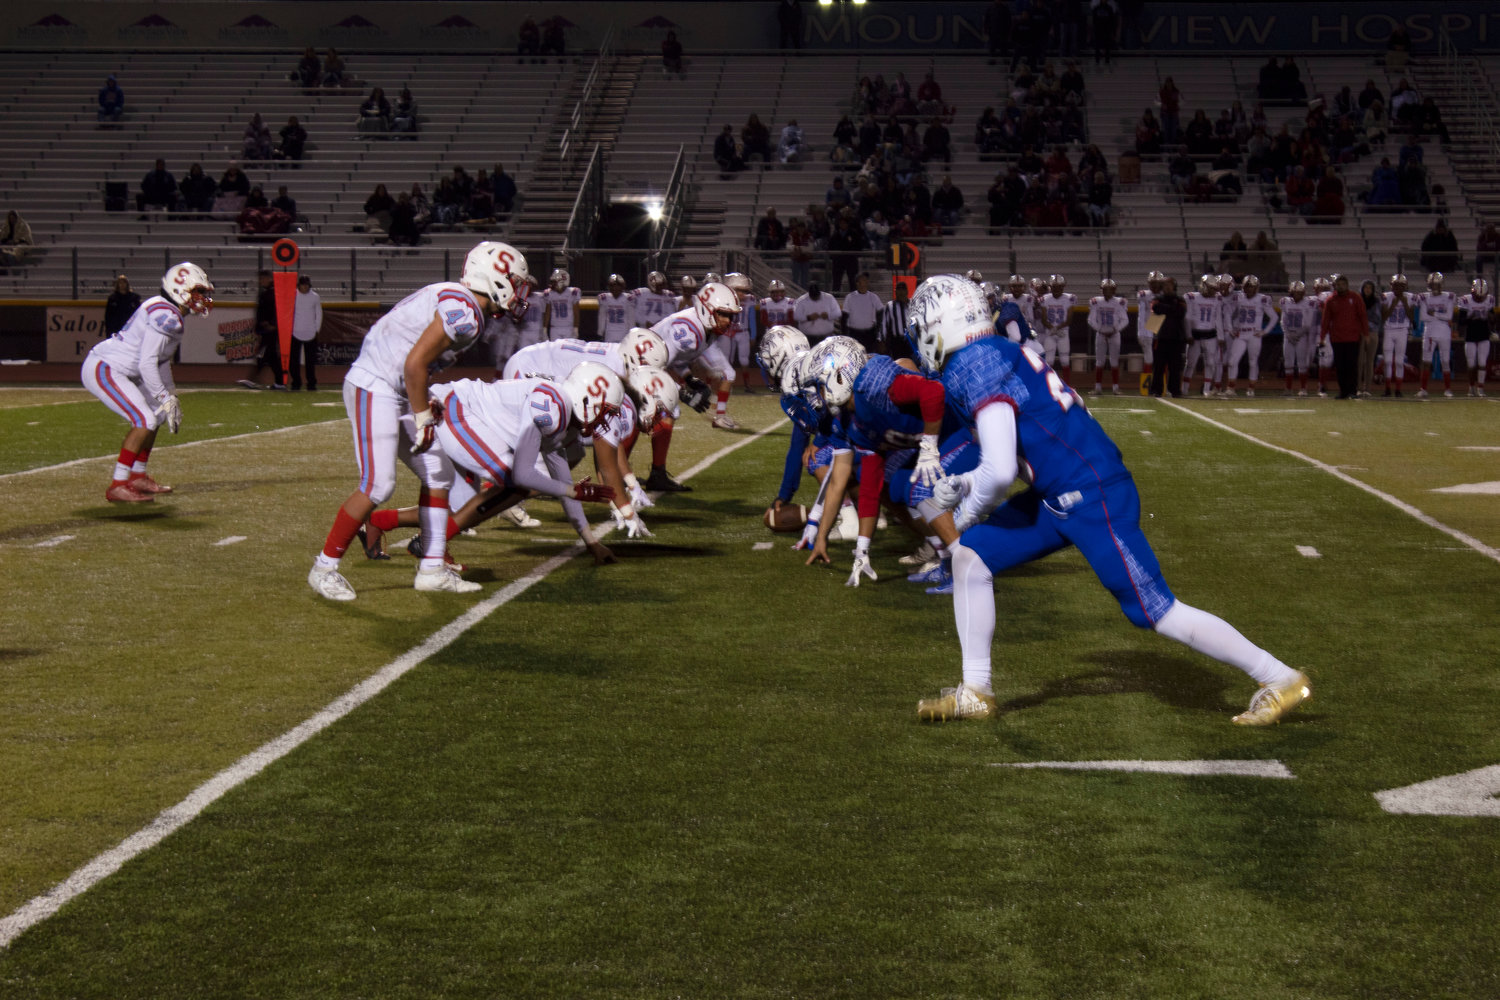 The Las Cruces Bulldawgs had little trouble lining up against Sandia.